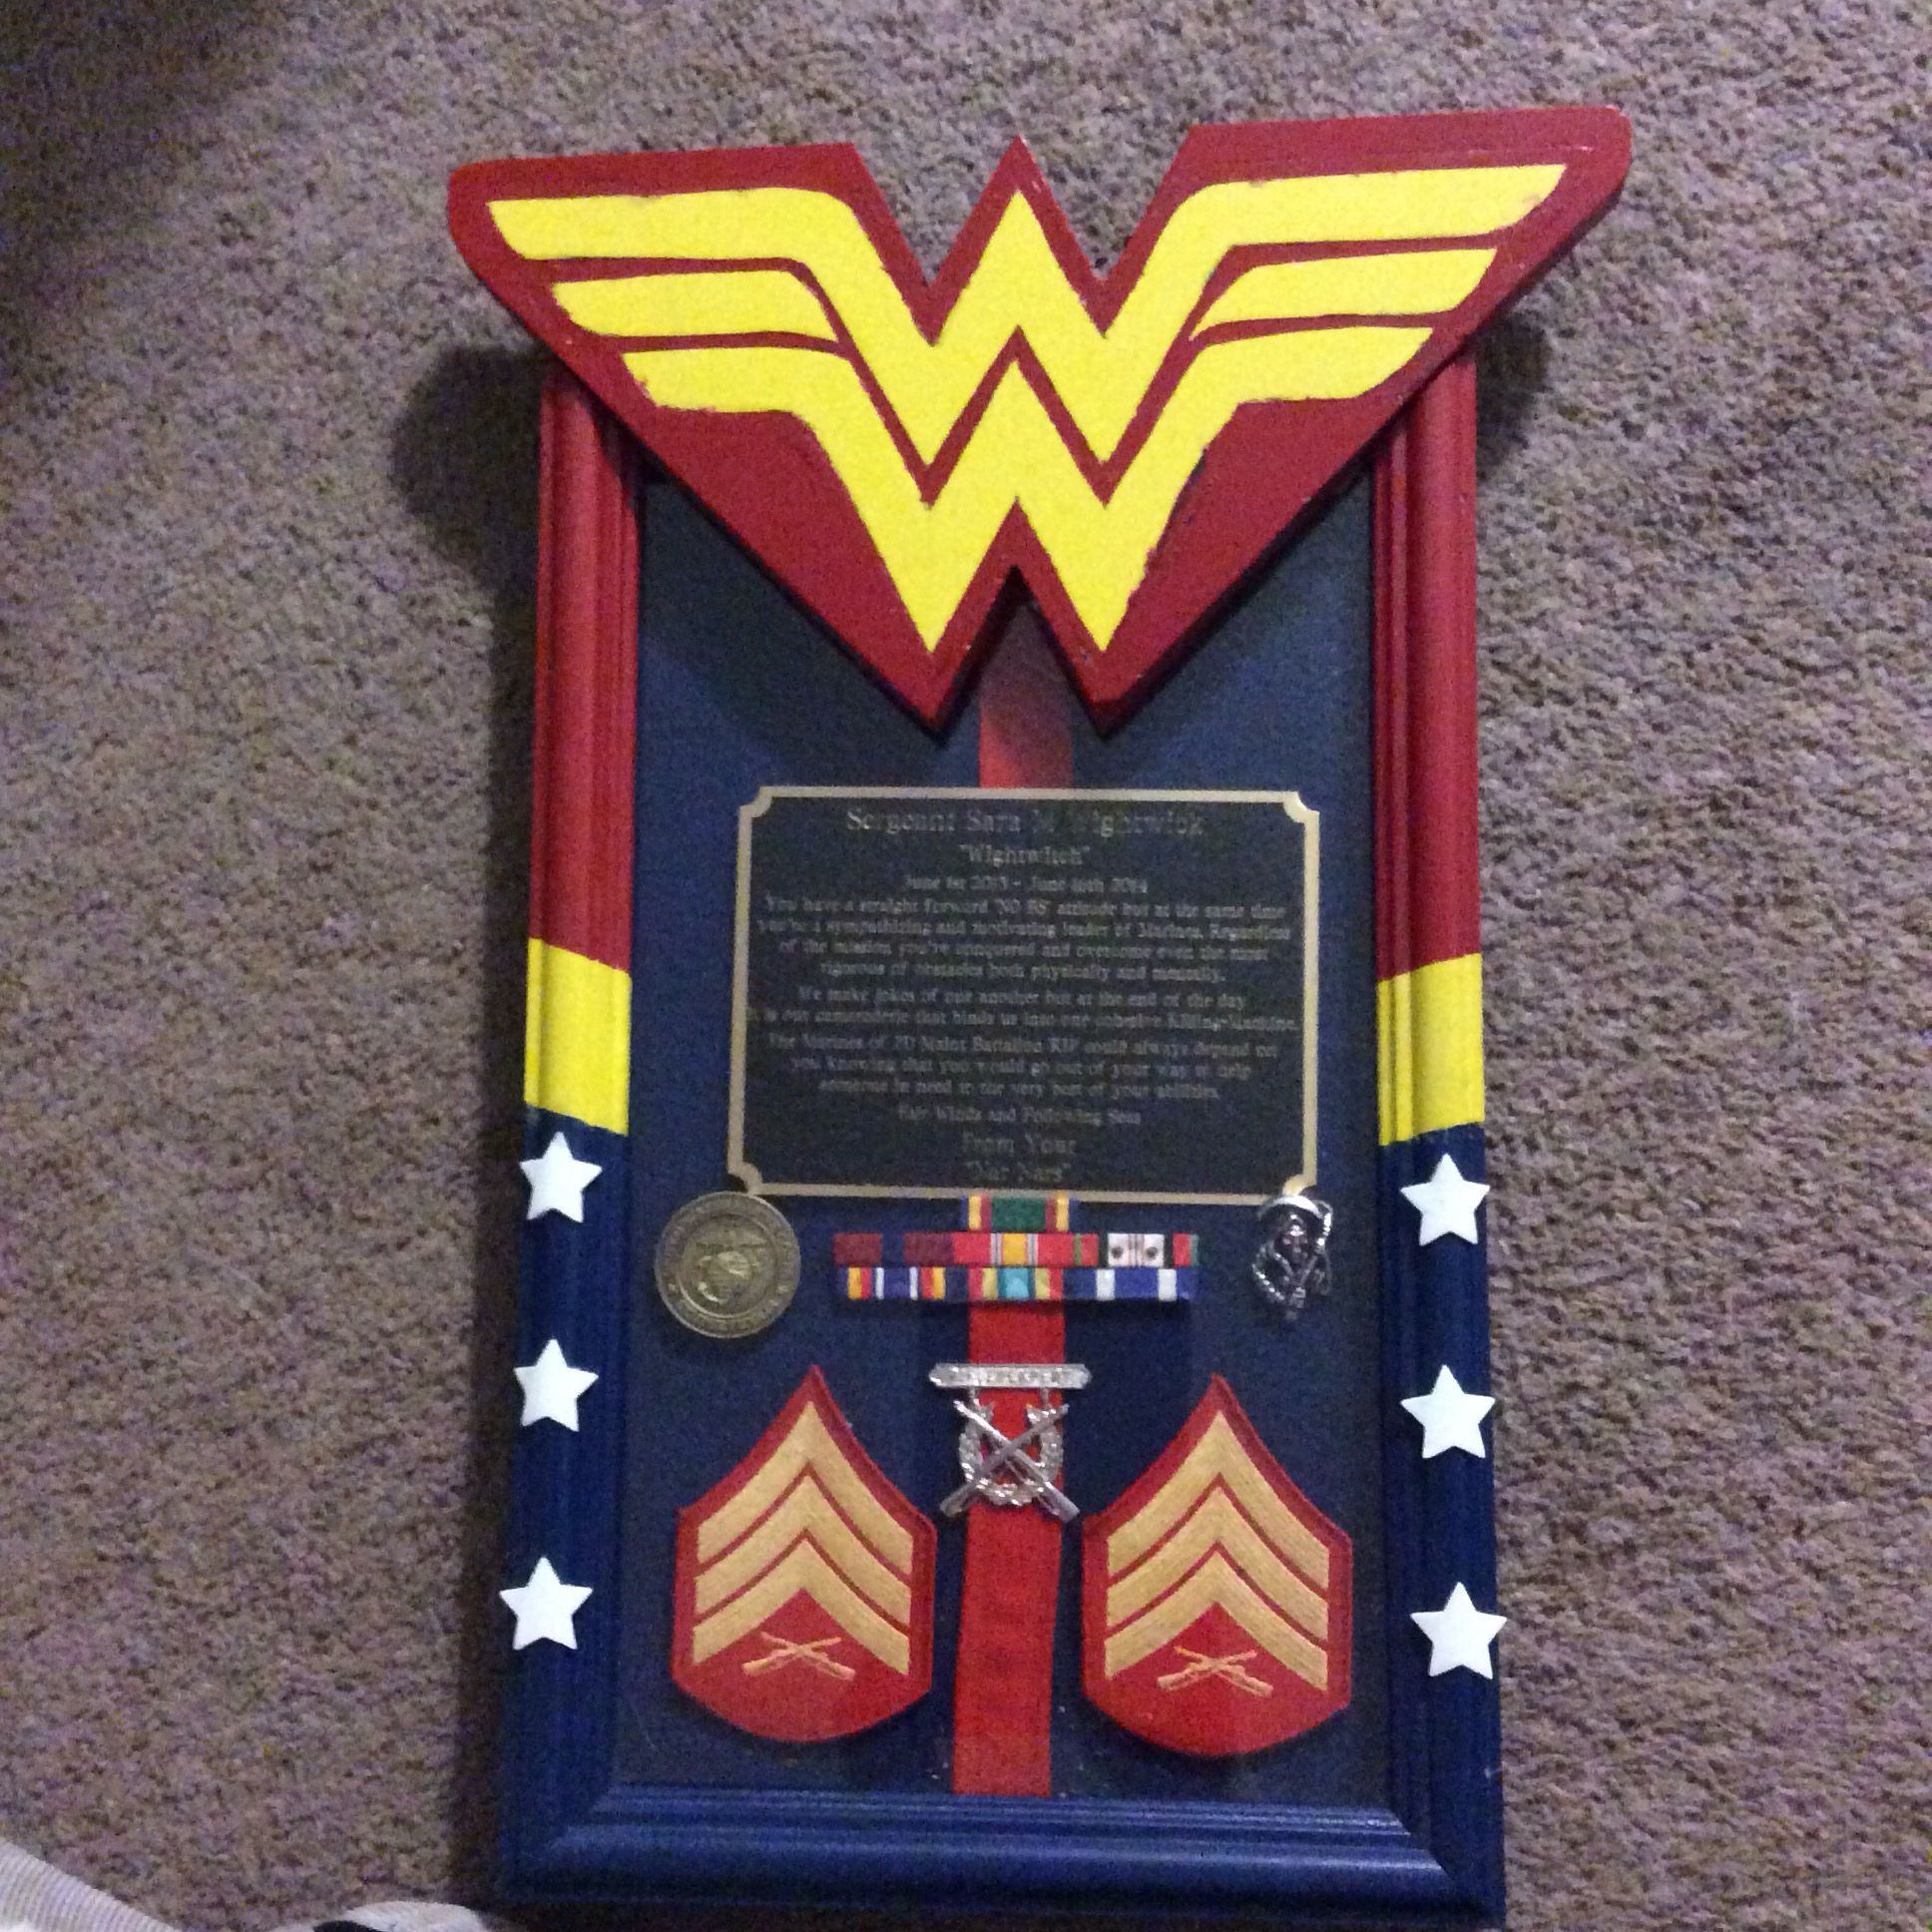 Going Away Quotes For Military Plaques: #USMC Marine Corps Plaque Made For Me By My Amazing Friend